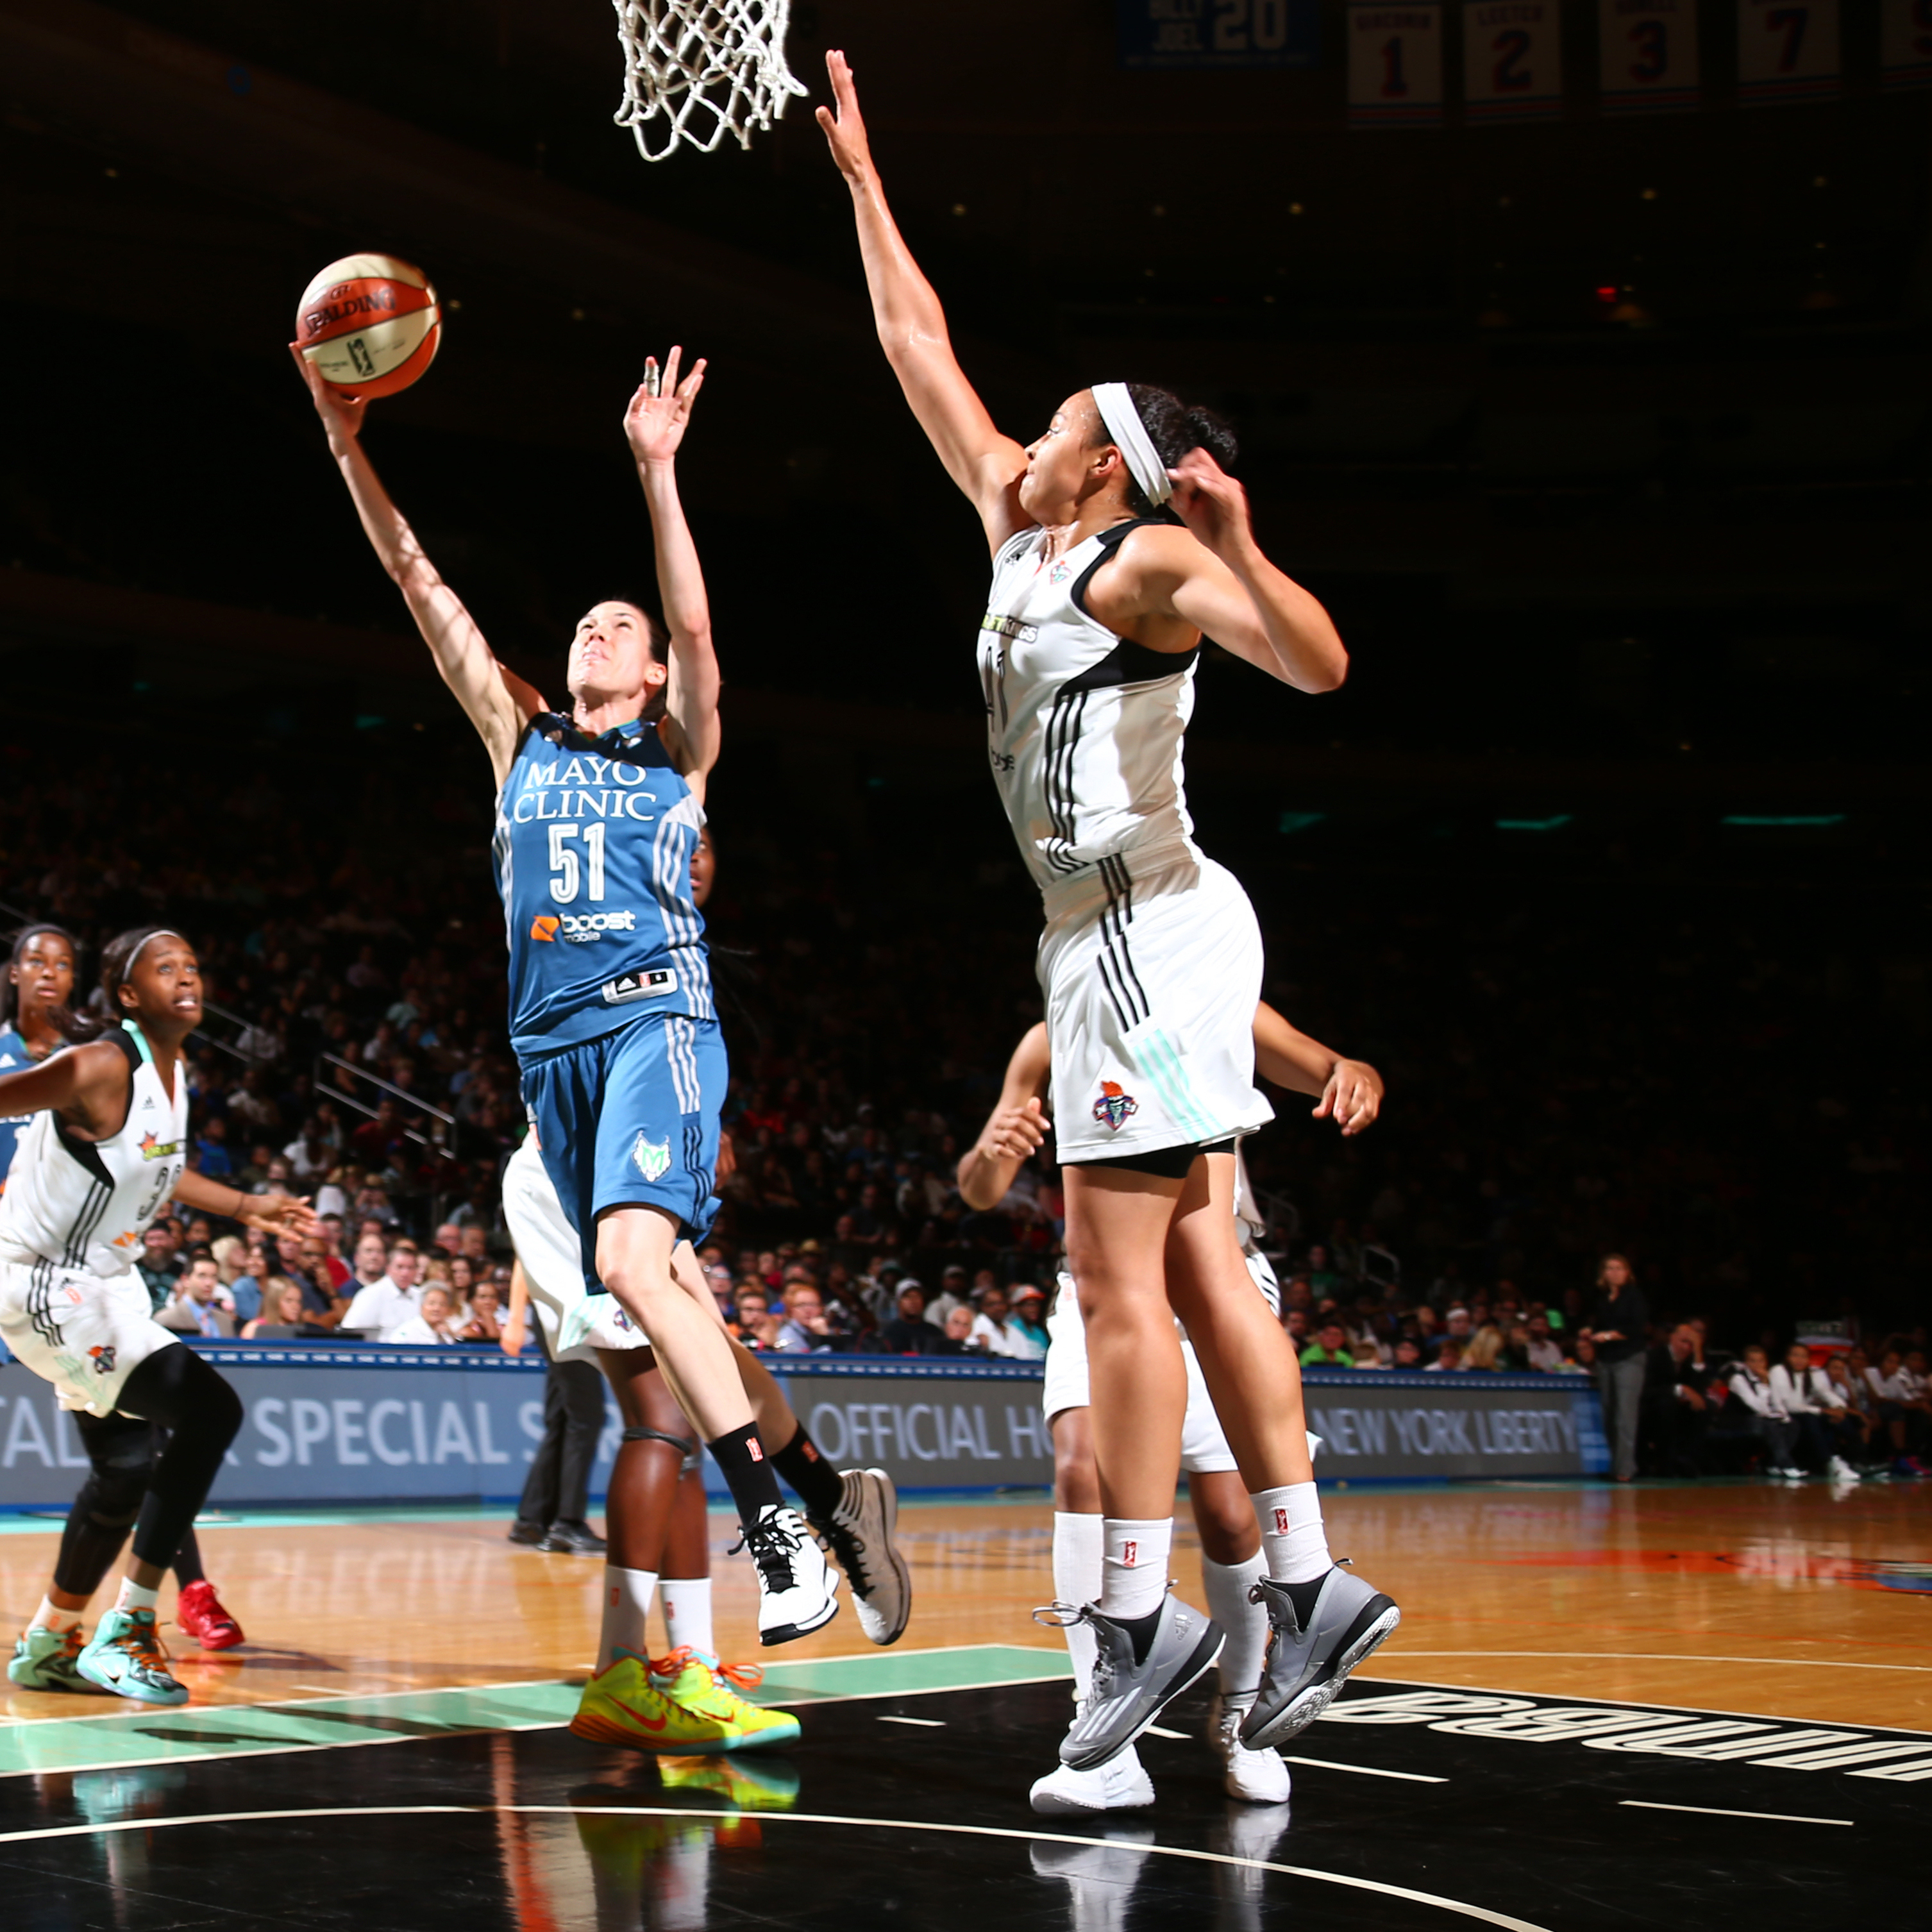 Lynx guard Anna Cruz had a rather quiet night herself, putting up just four points, three assists and a steal in Minnesota's loss.